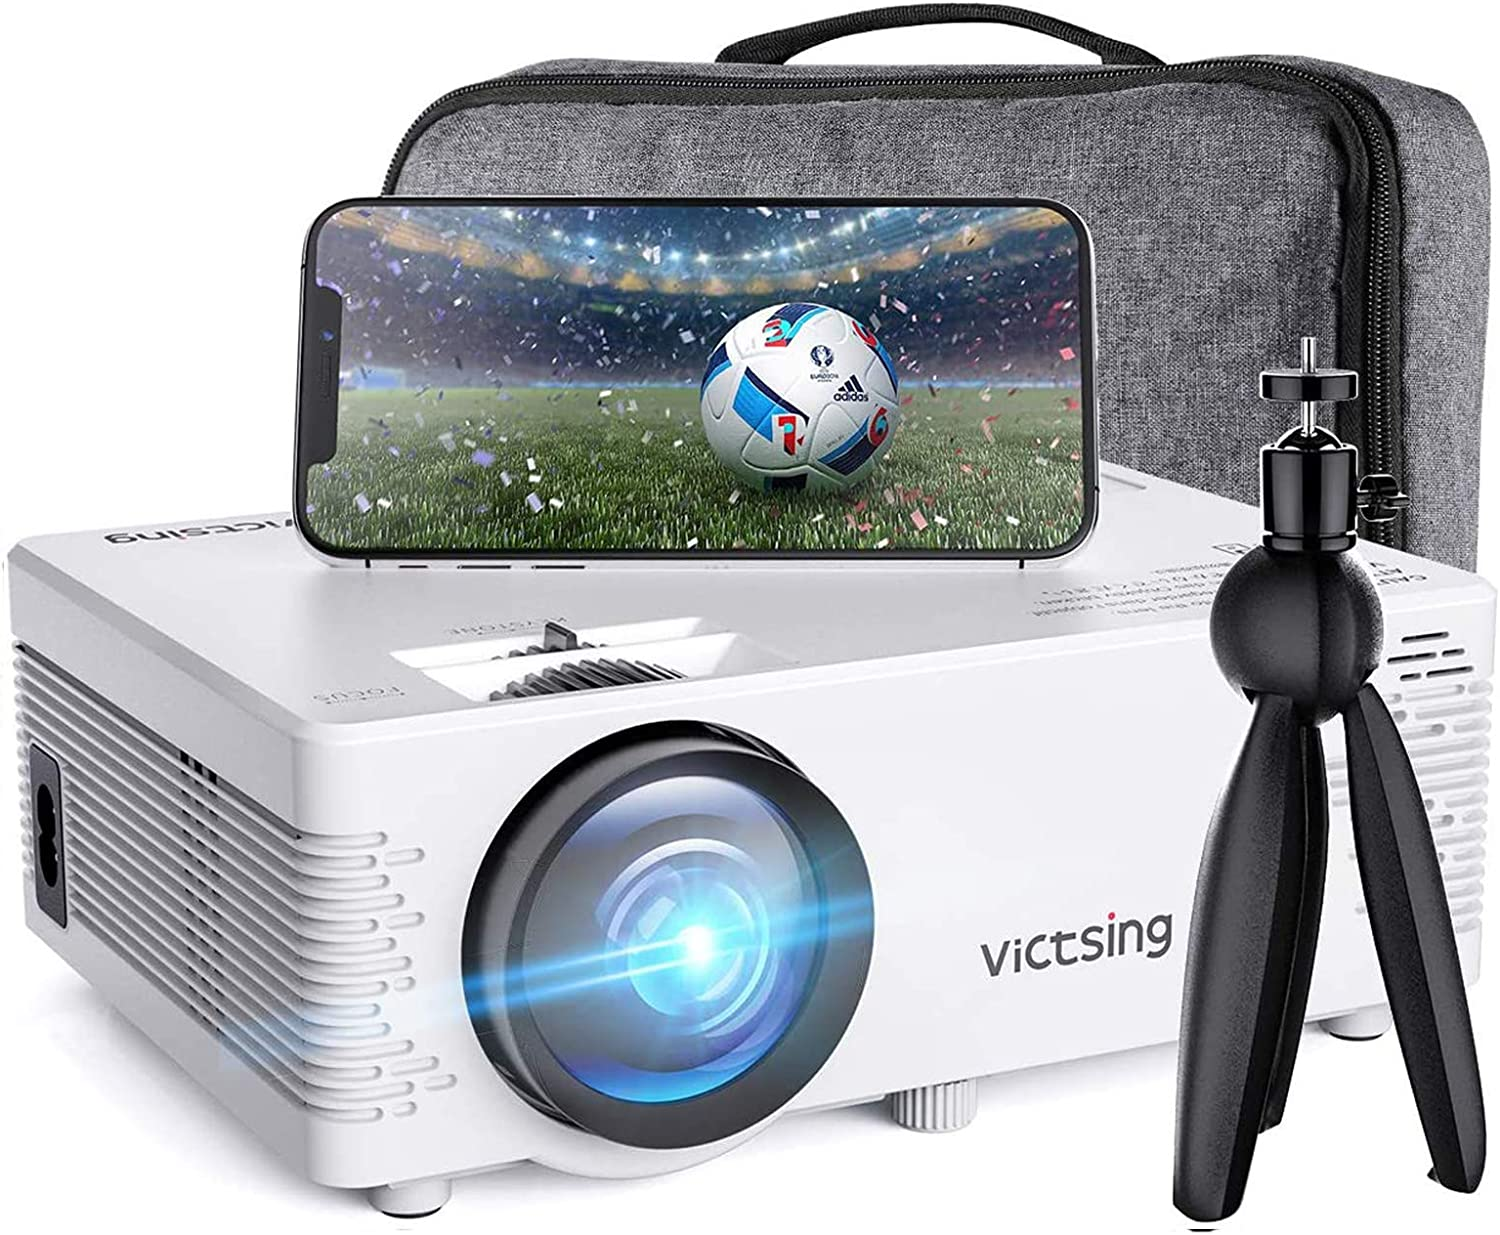 VicTsing WiFi Projector Bluetooth & Screen Mirroring, 3800 Lux Wireless Projector Bluetooth with Tripod, 1080P Supported, HiFi Sound. Mini Projector Compatible with TV Stick, PS4.(w/Customsized Bag)